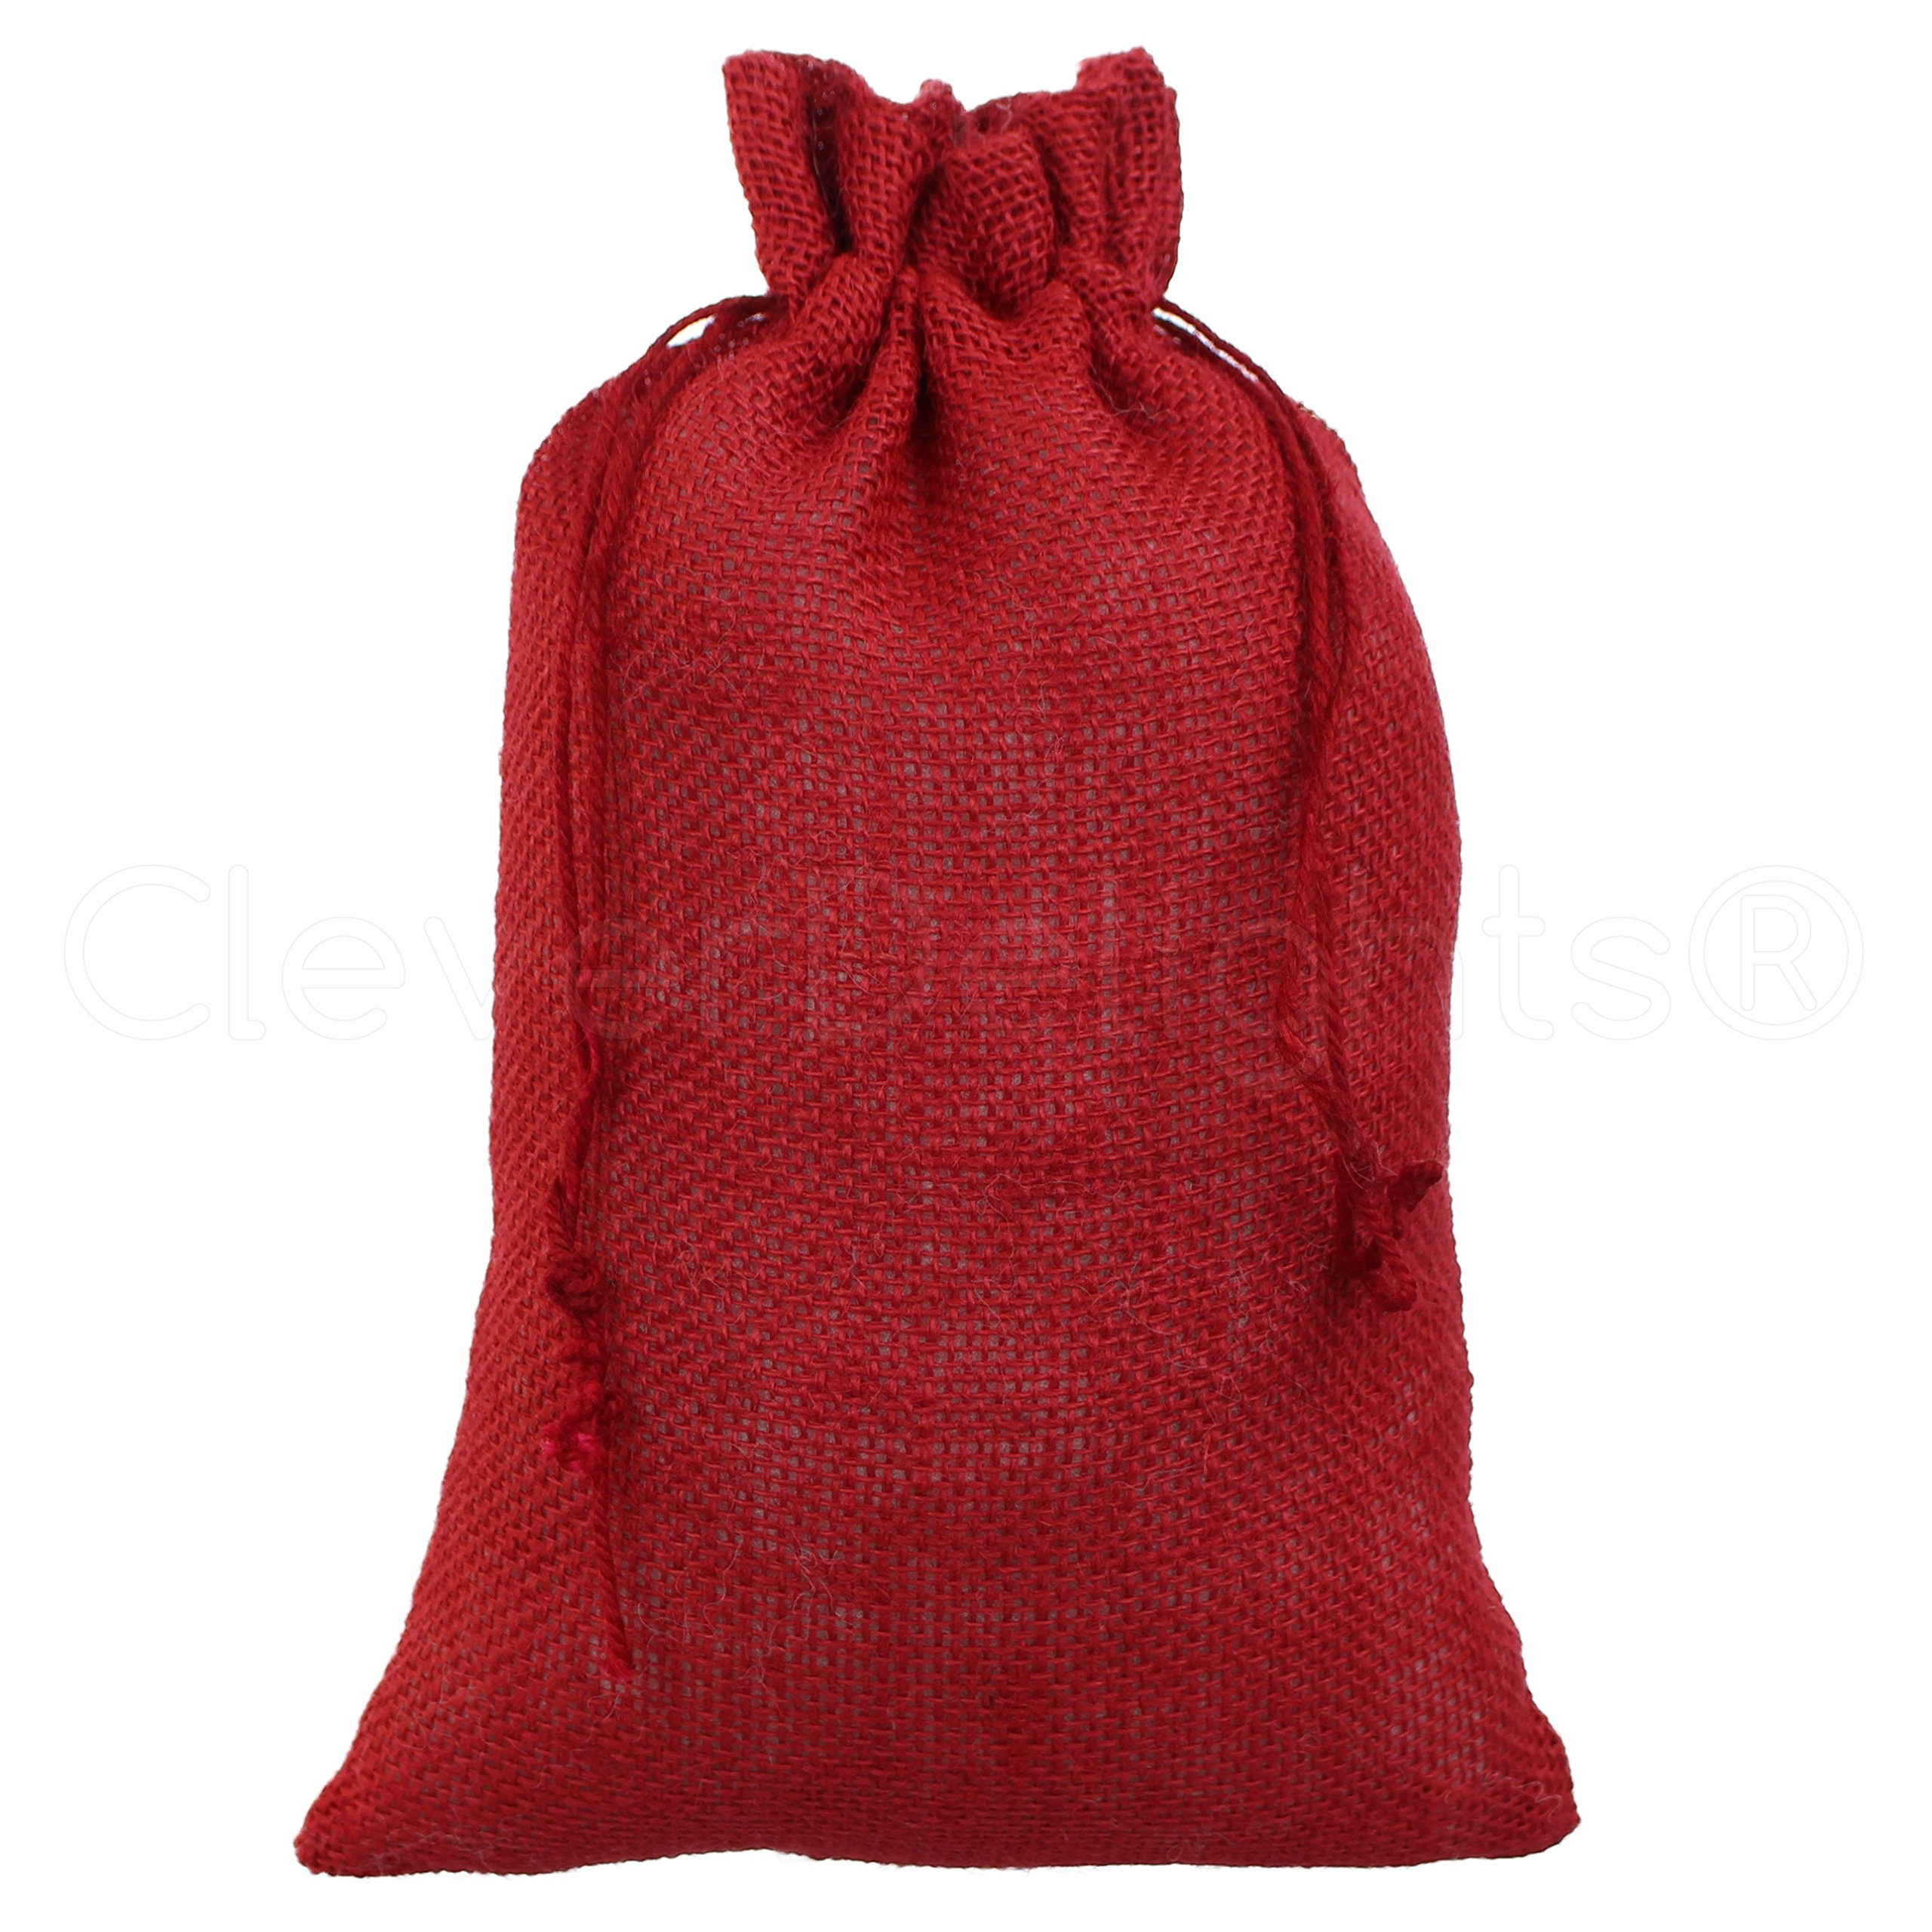 25 Pack - CleverDelights 8'' x 12'' Red Burlap Bags with Natural Jute Drawstring - Christmas Present Holiday Décor Rustic Party Favor Pouch Bags by CleverDelights (Image #2)